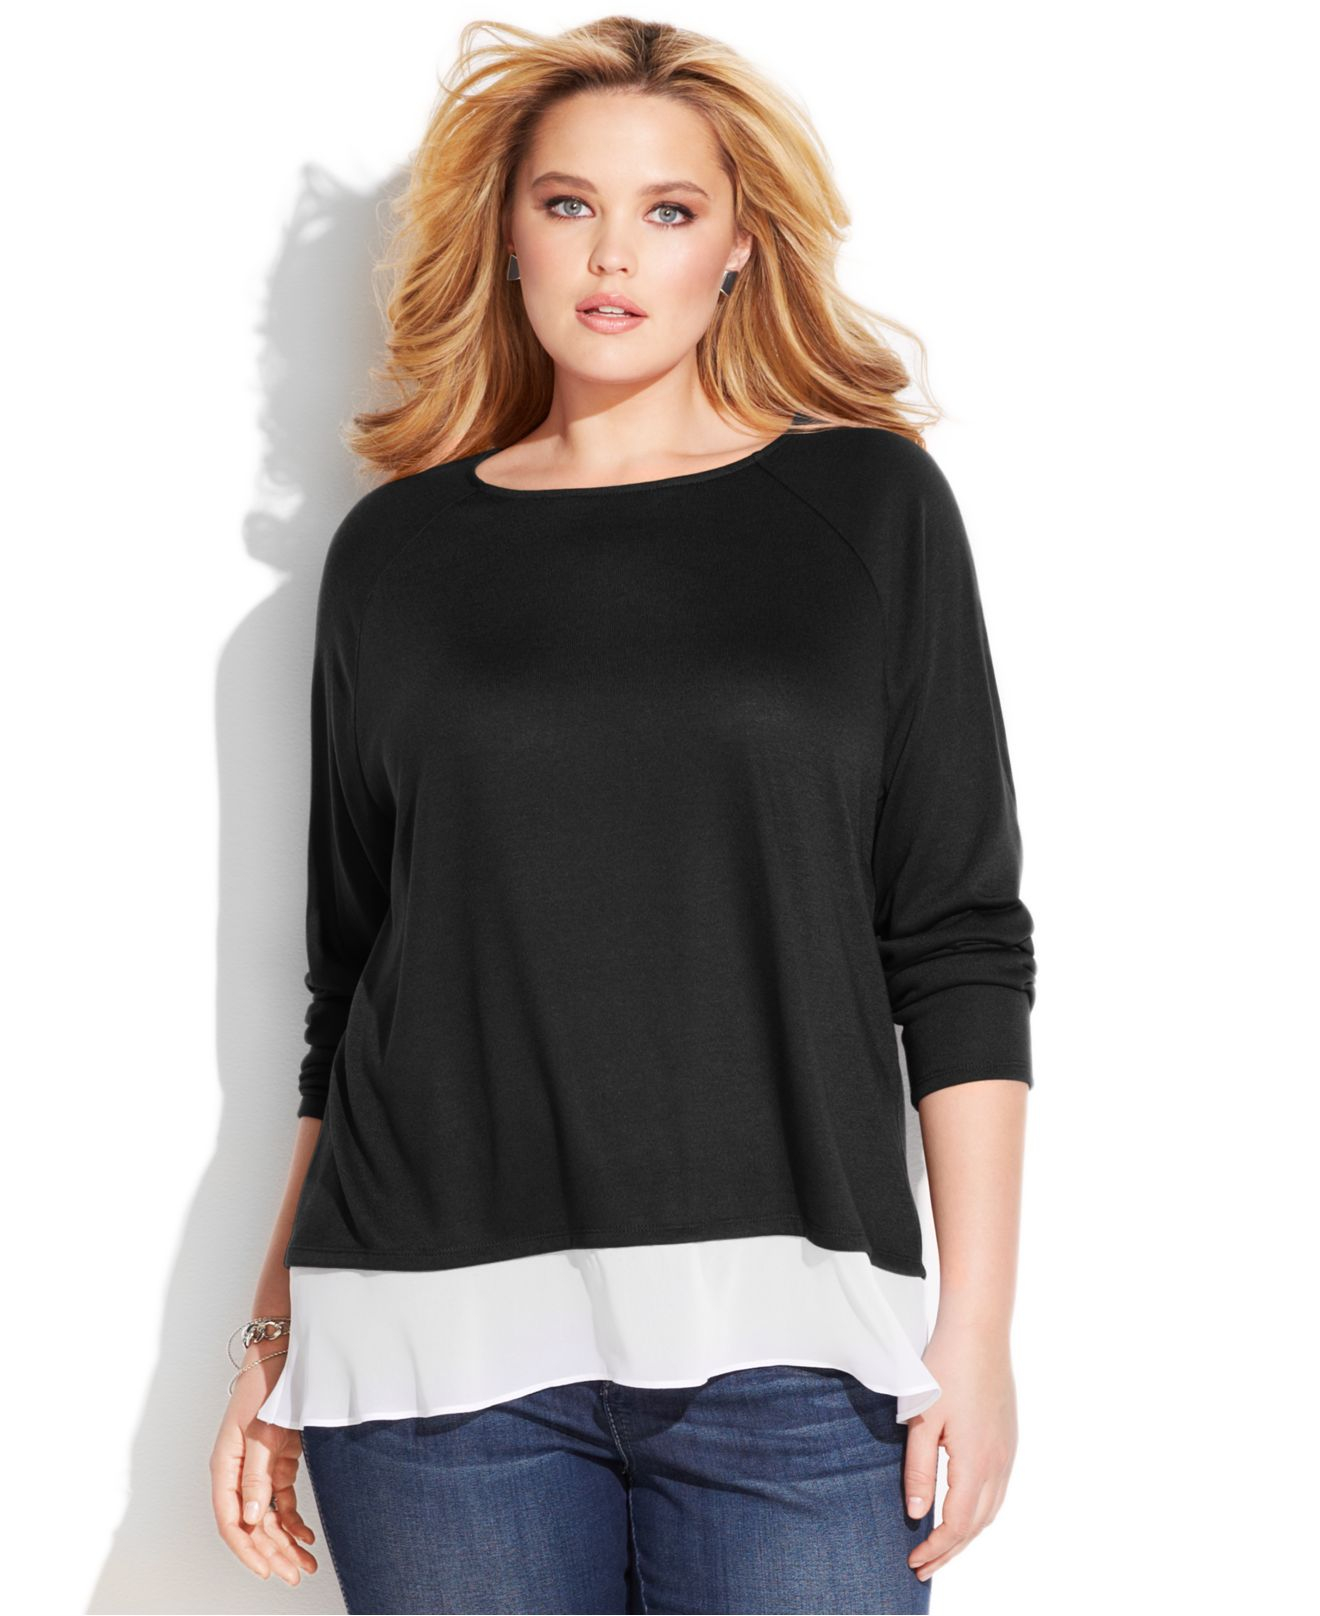 Women's Sweaters Deals: 50 to 90% off deals on Groupon Goods. Plus Size Clothing Plus Size Intimates,Plus Size Bottoms,Pl Maternity Clothing Maternity Dresses,Maternity Intimates,Ma Lyss Loo Simply Amazing Ribbed Cardigan Sweater. Plus .